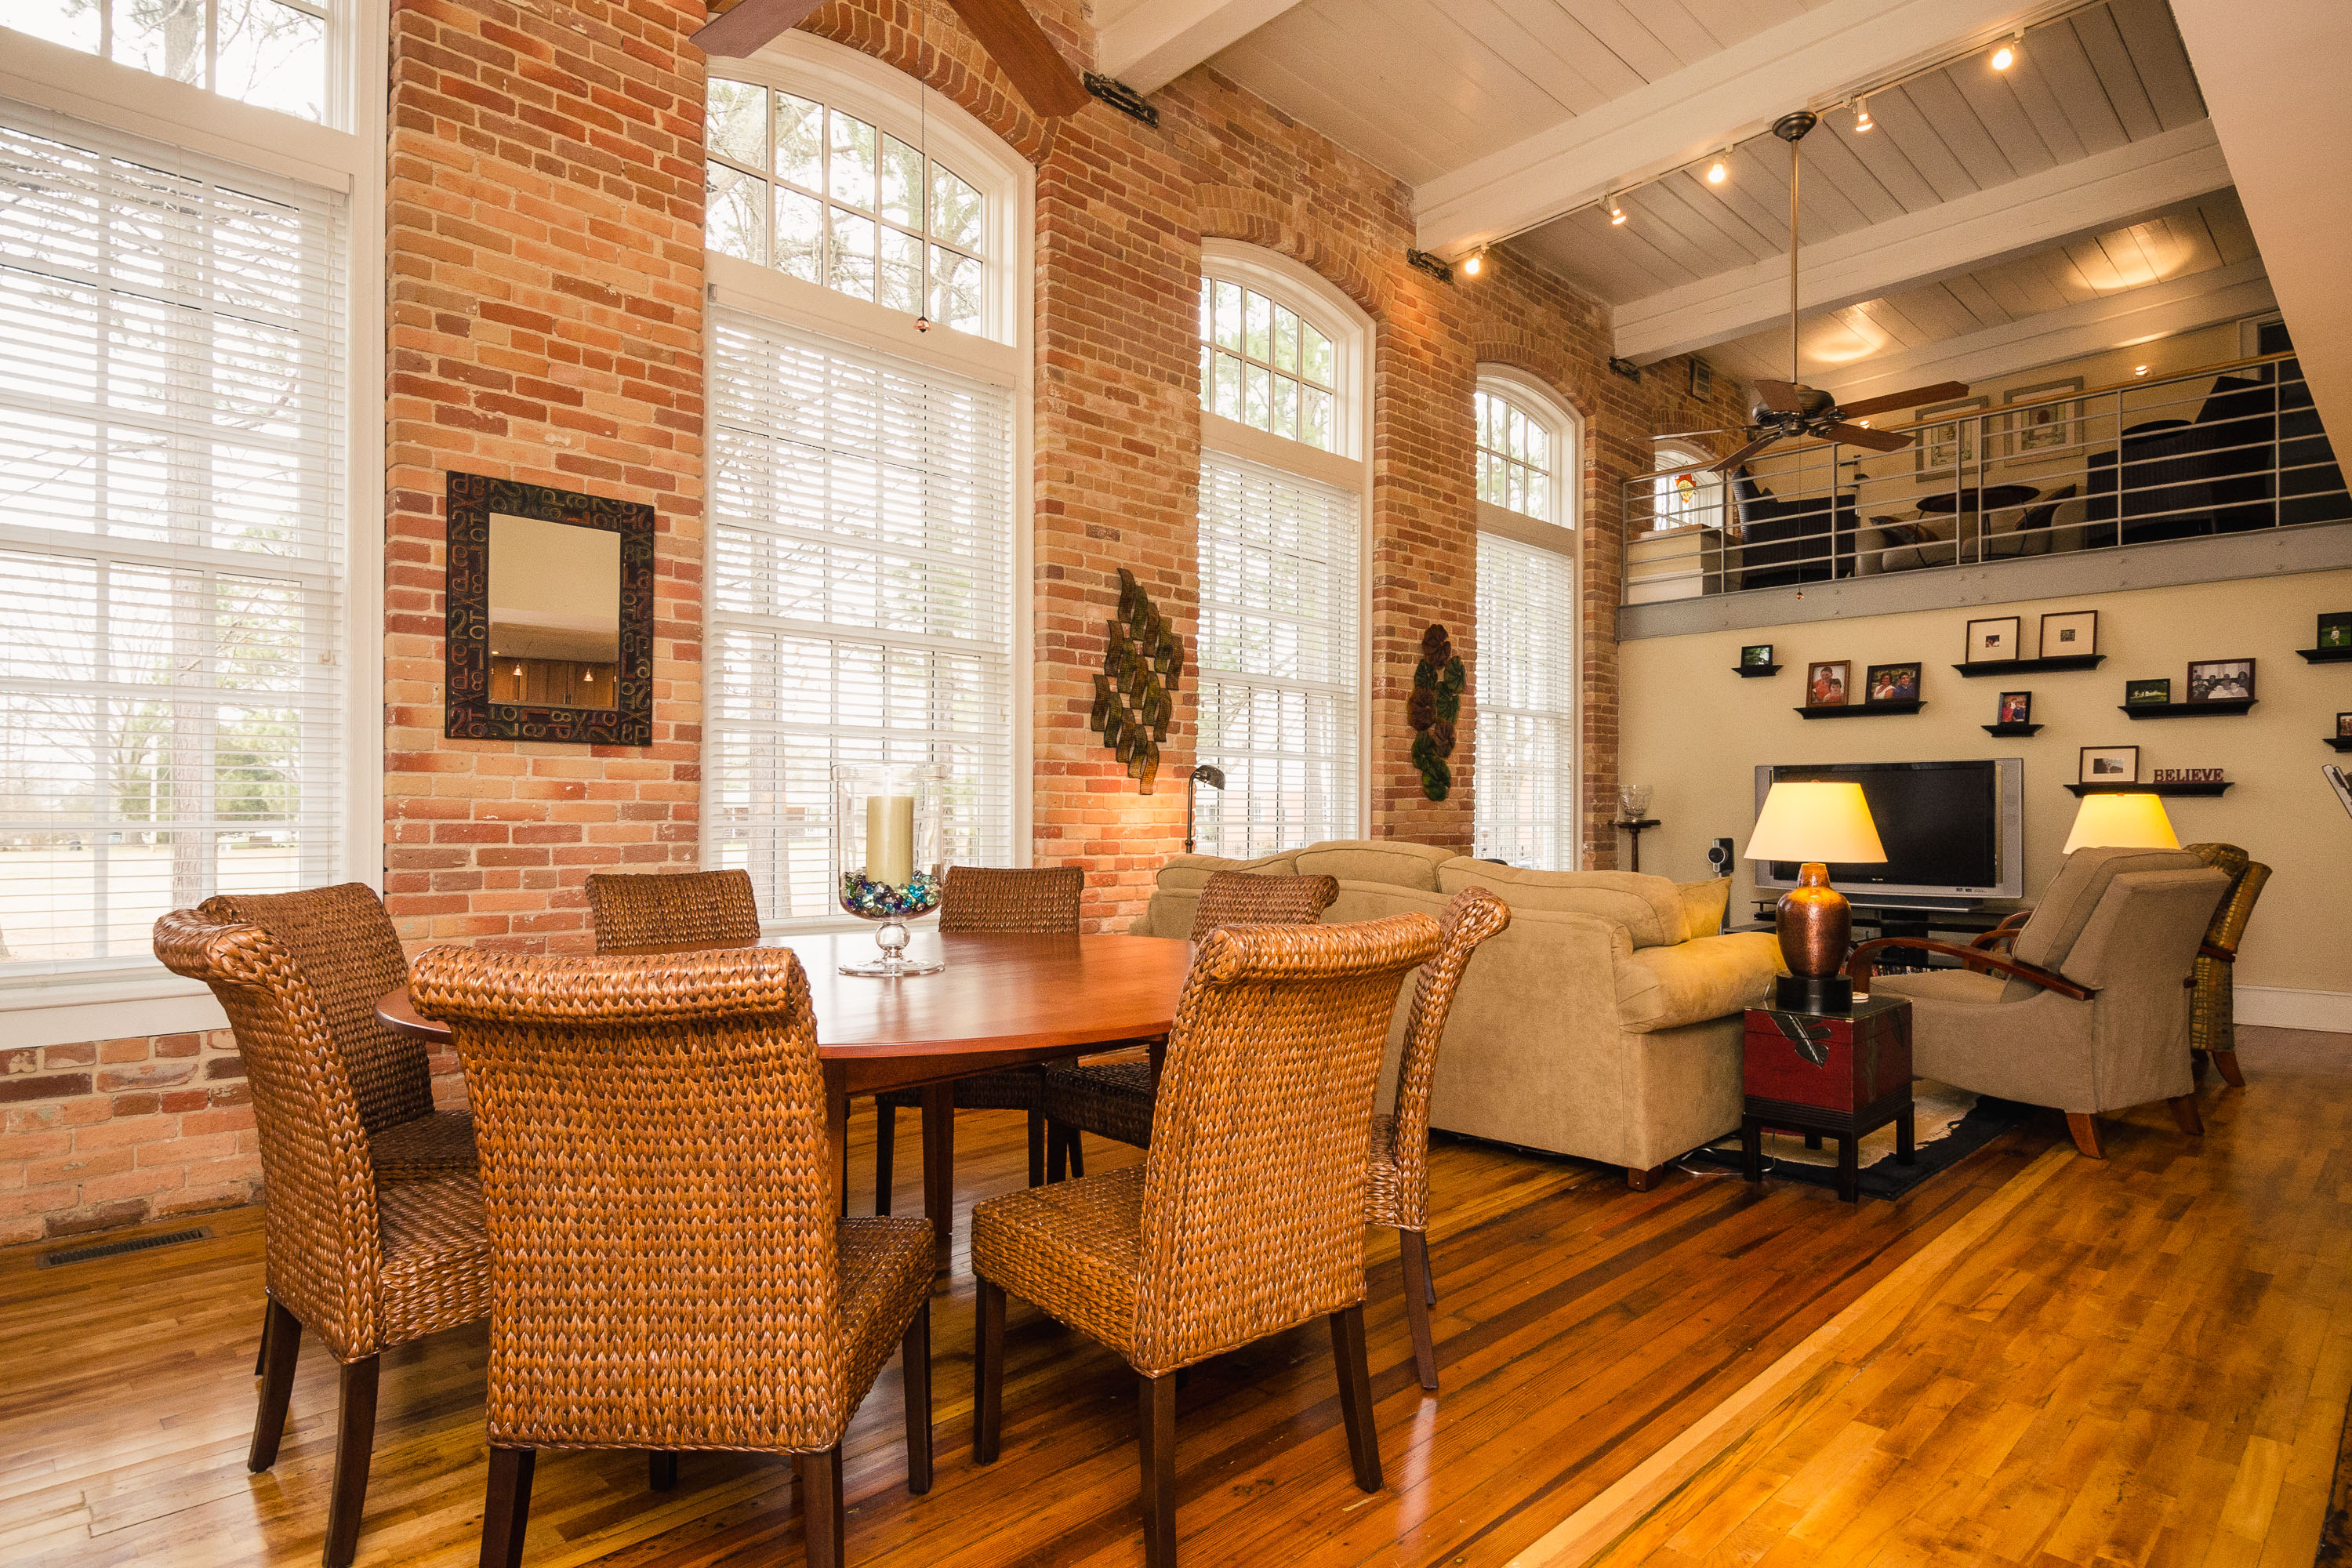 Property For Sale at 402 Edenton Cotton Mill